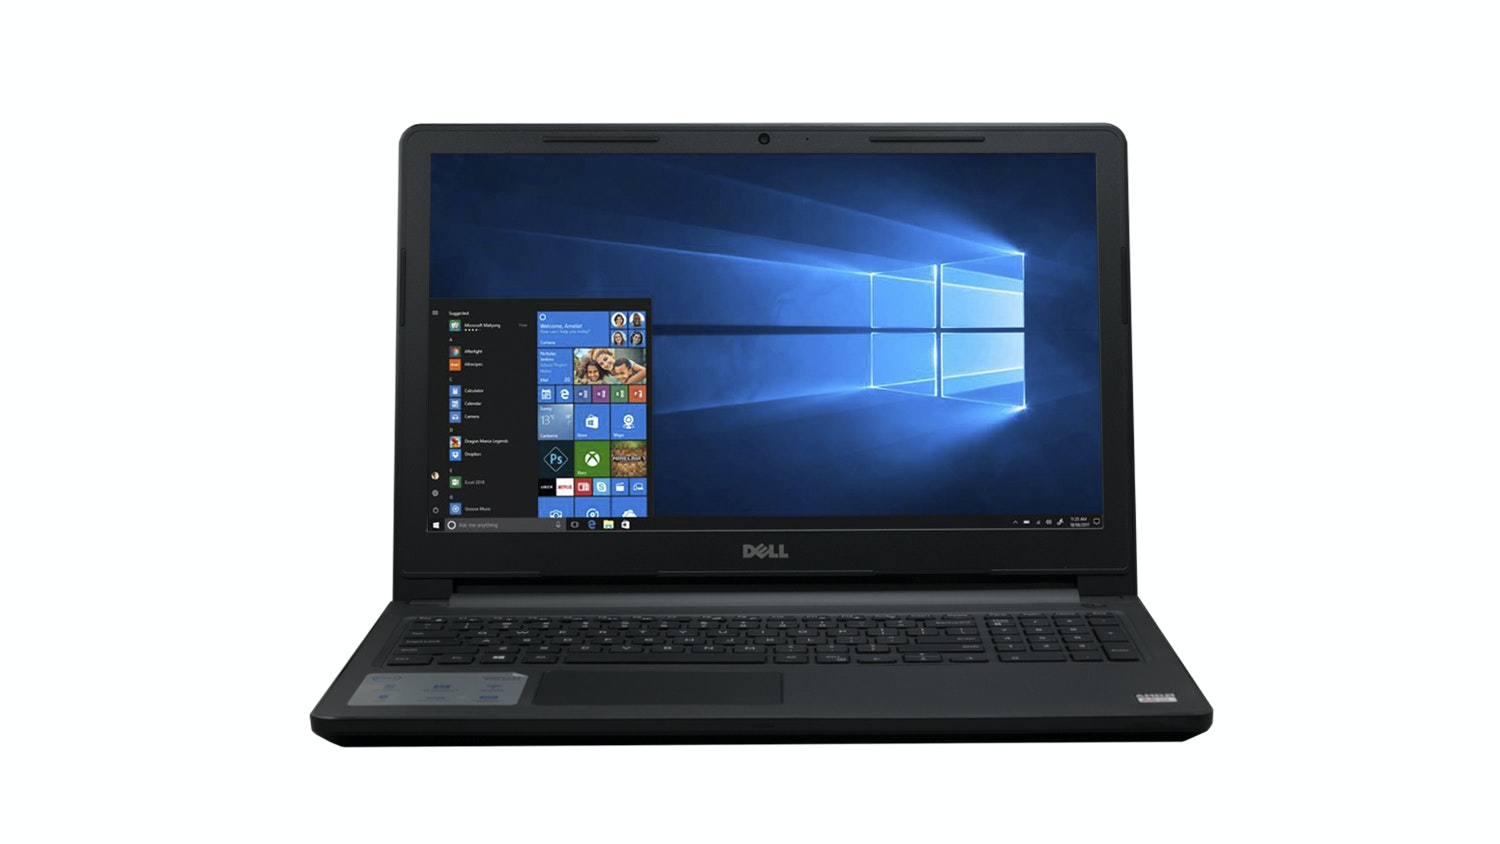 Dell Inspiron I3565-A125BLK-PUS Front